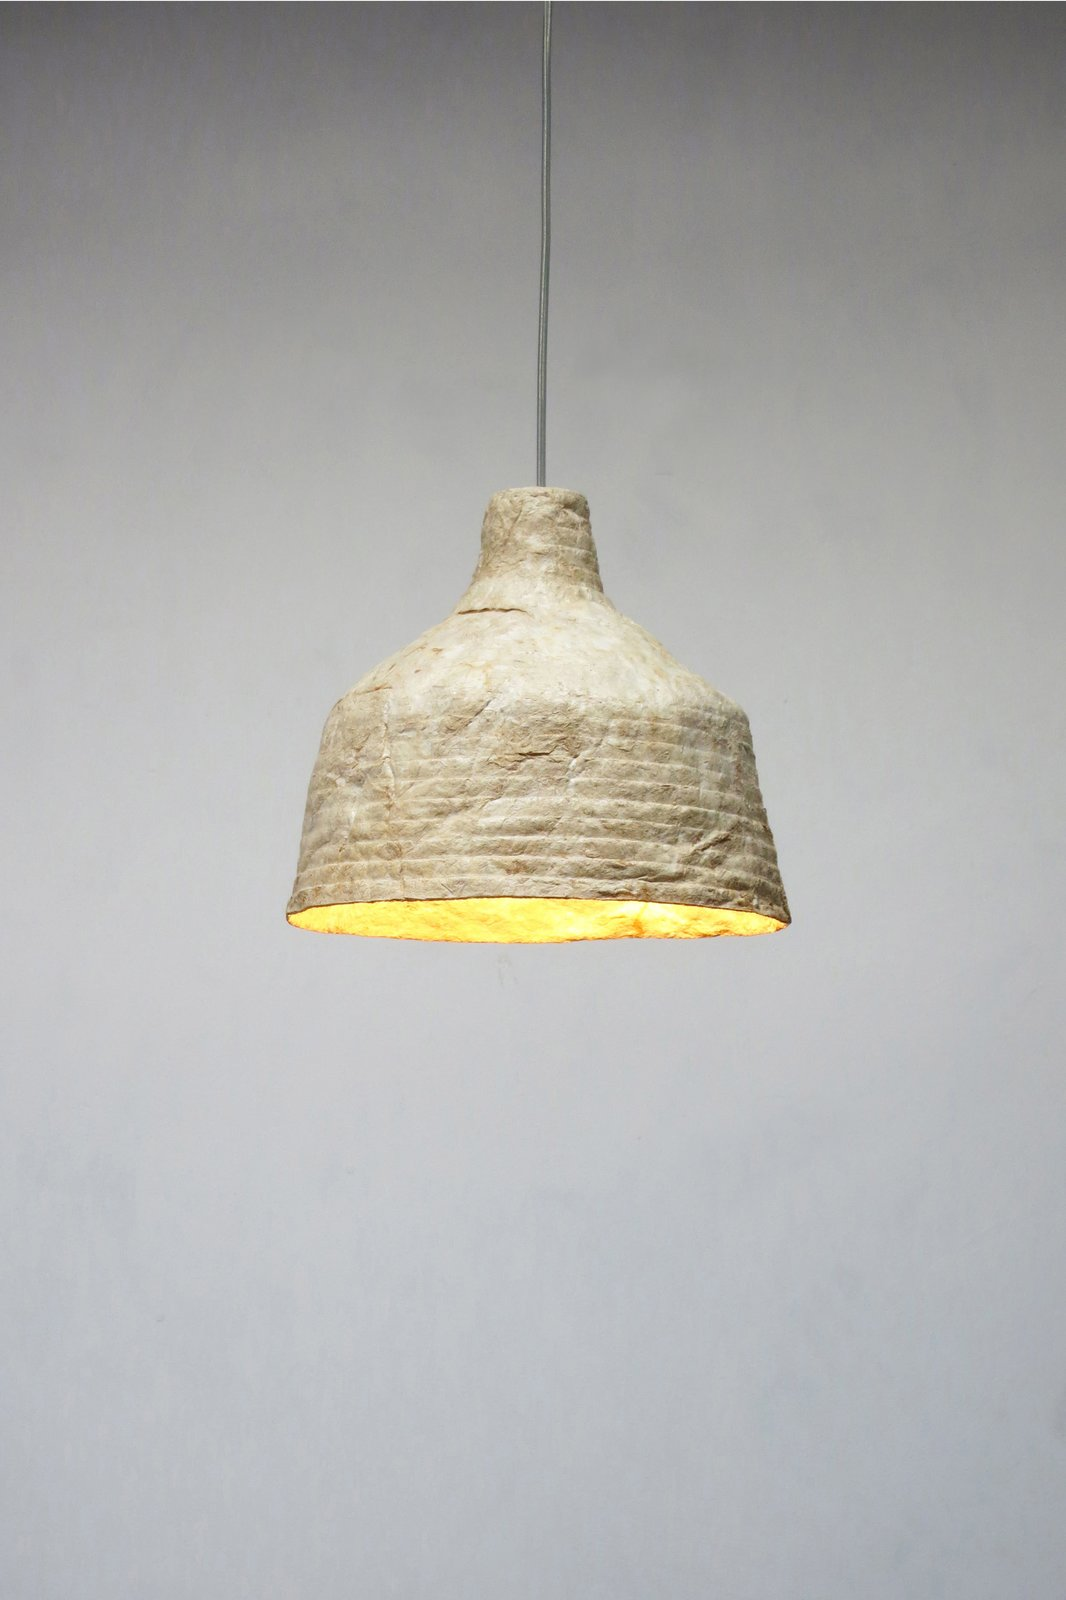 The result is a sustainble light made from dried mushrooms.  Photo 7 of 7 in Grow Your Own Designs Like Jonas Edvard